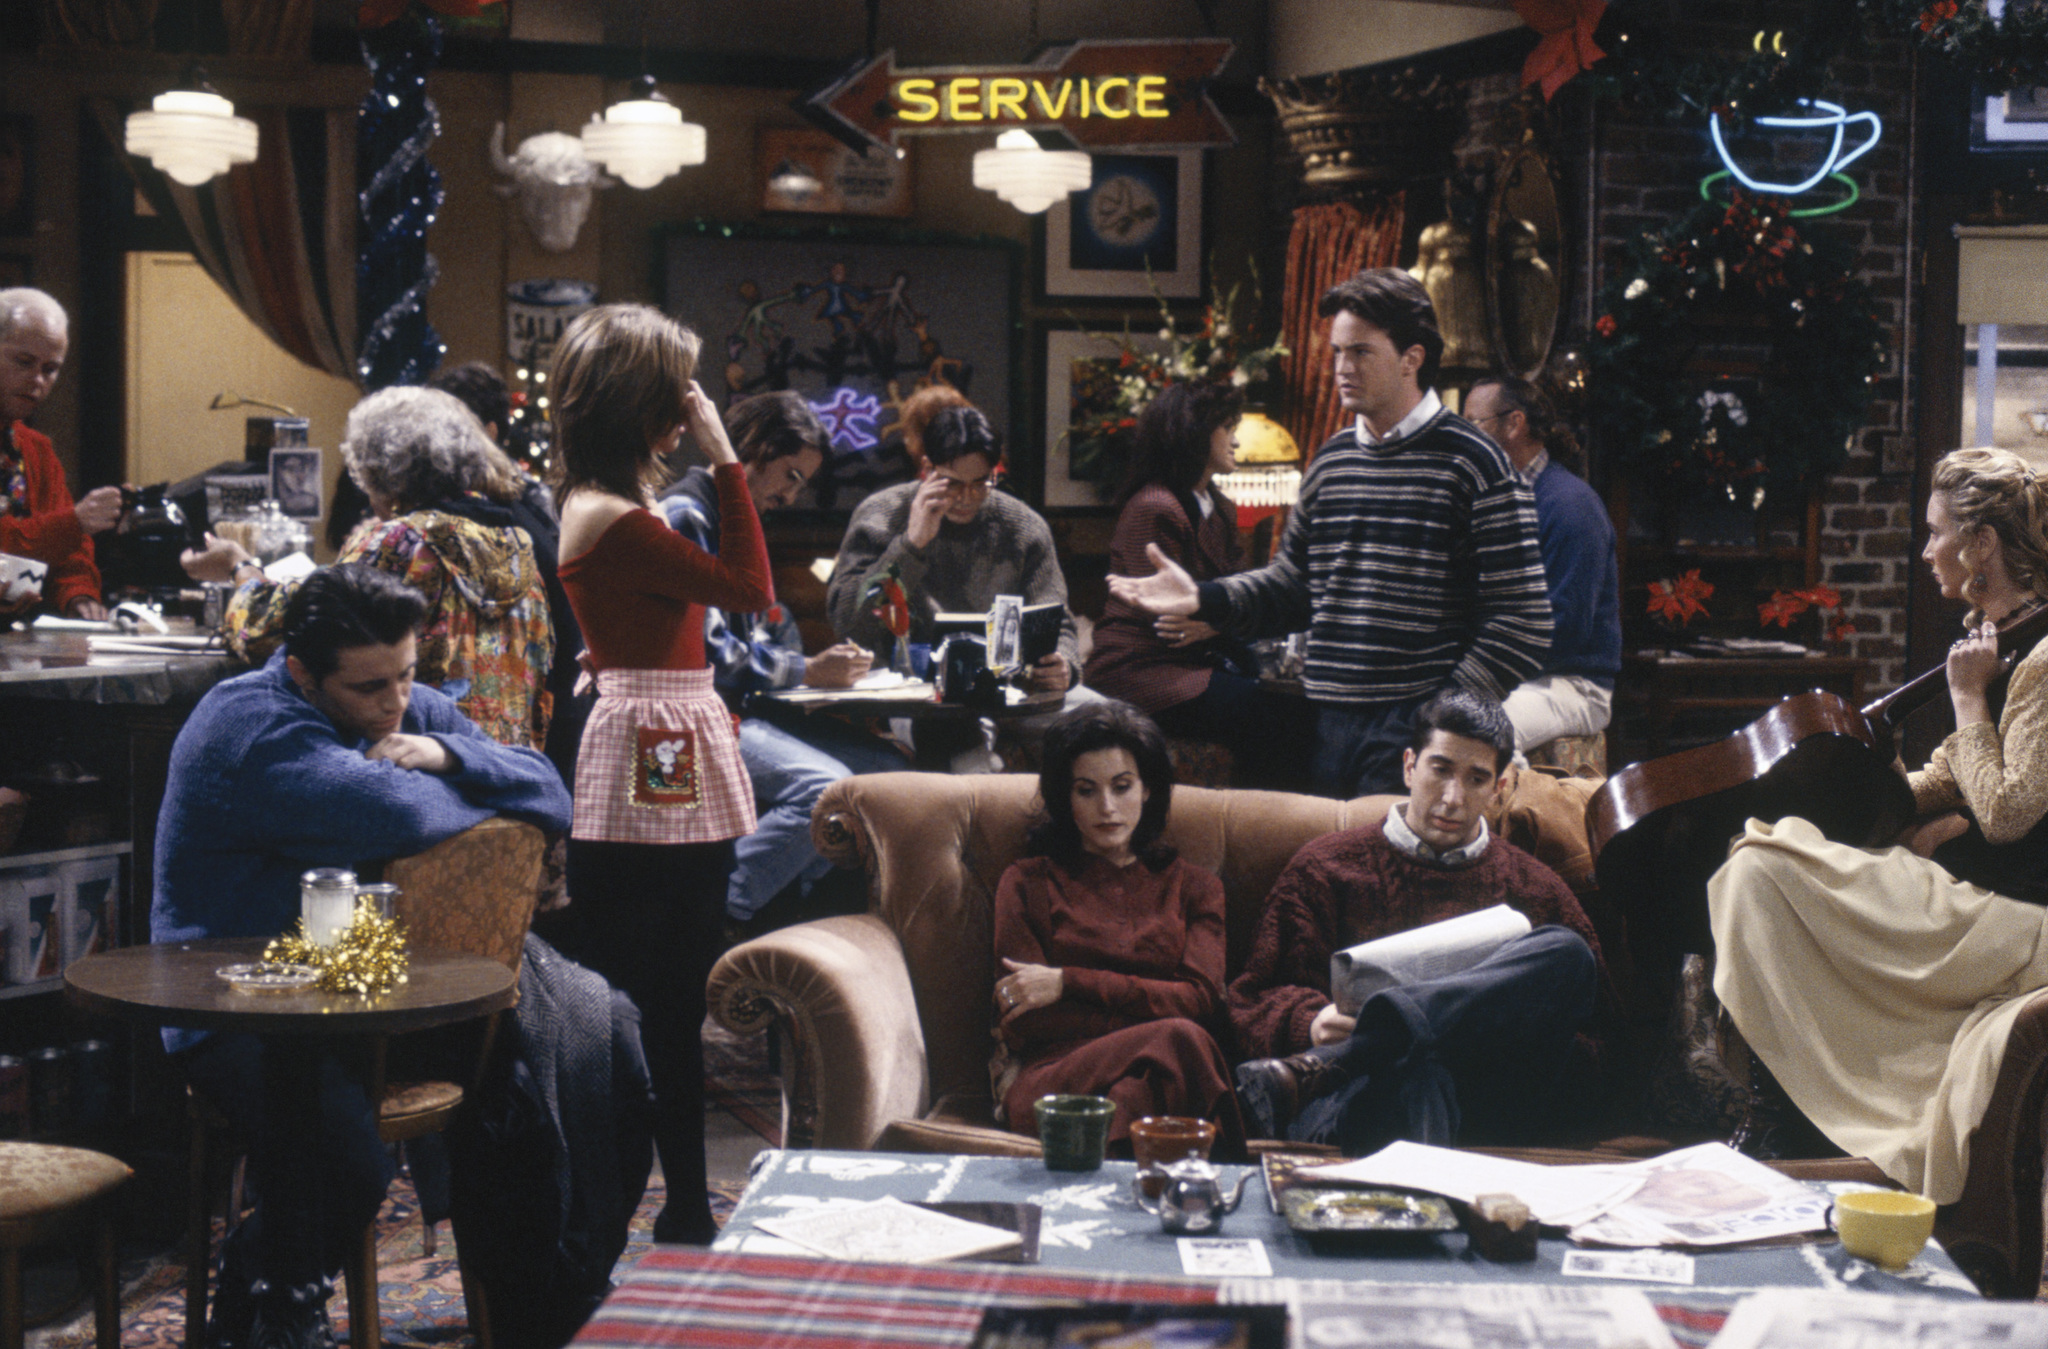 Friends: The One with the Monkey | Season 1 | Episode 10